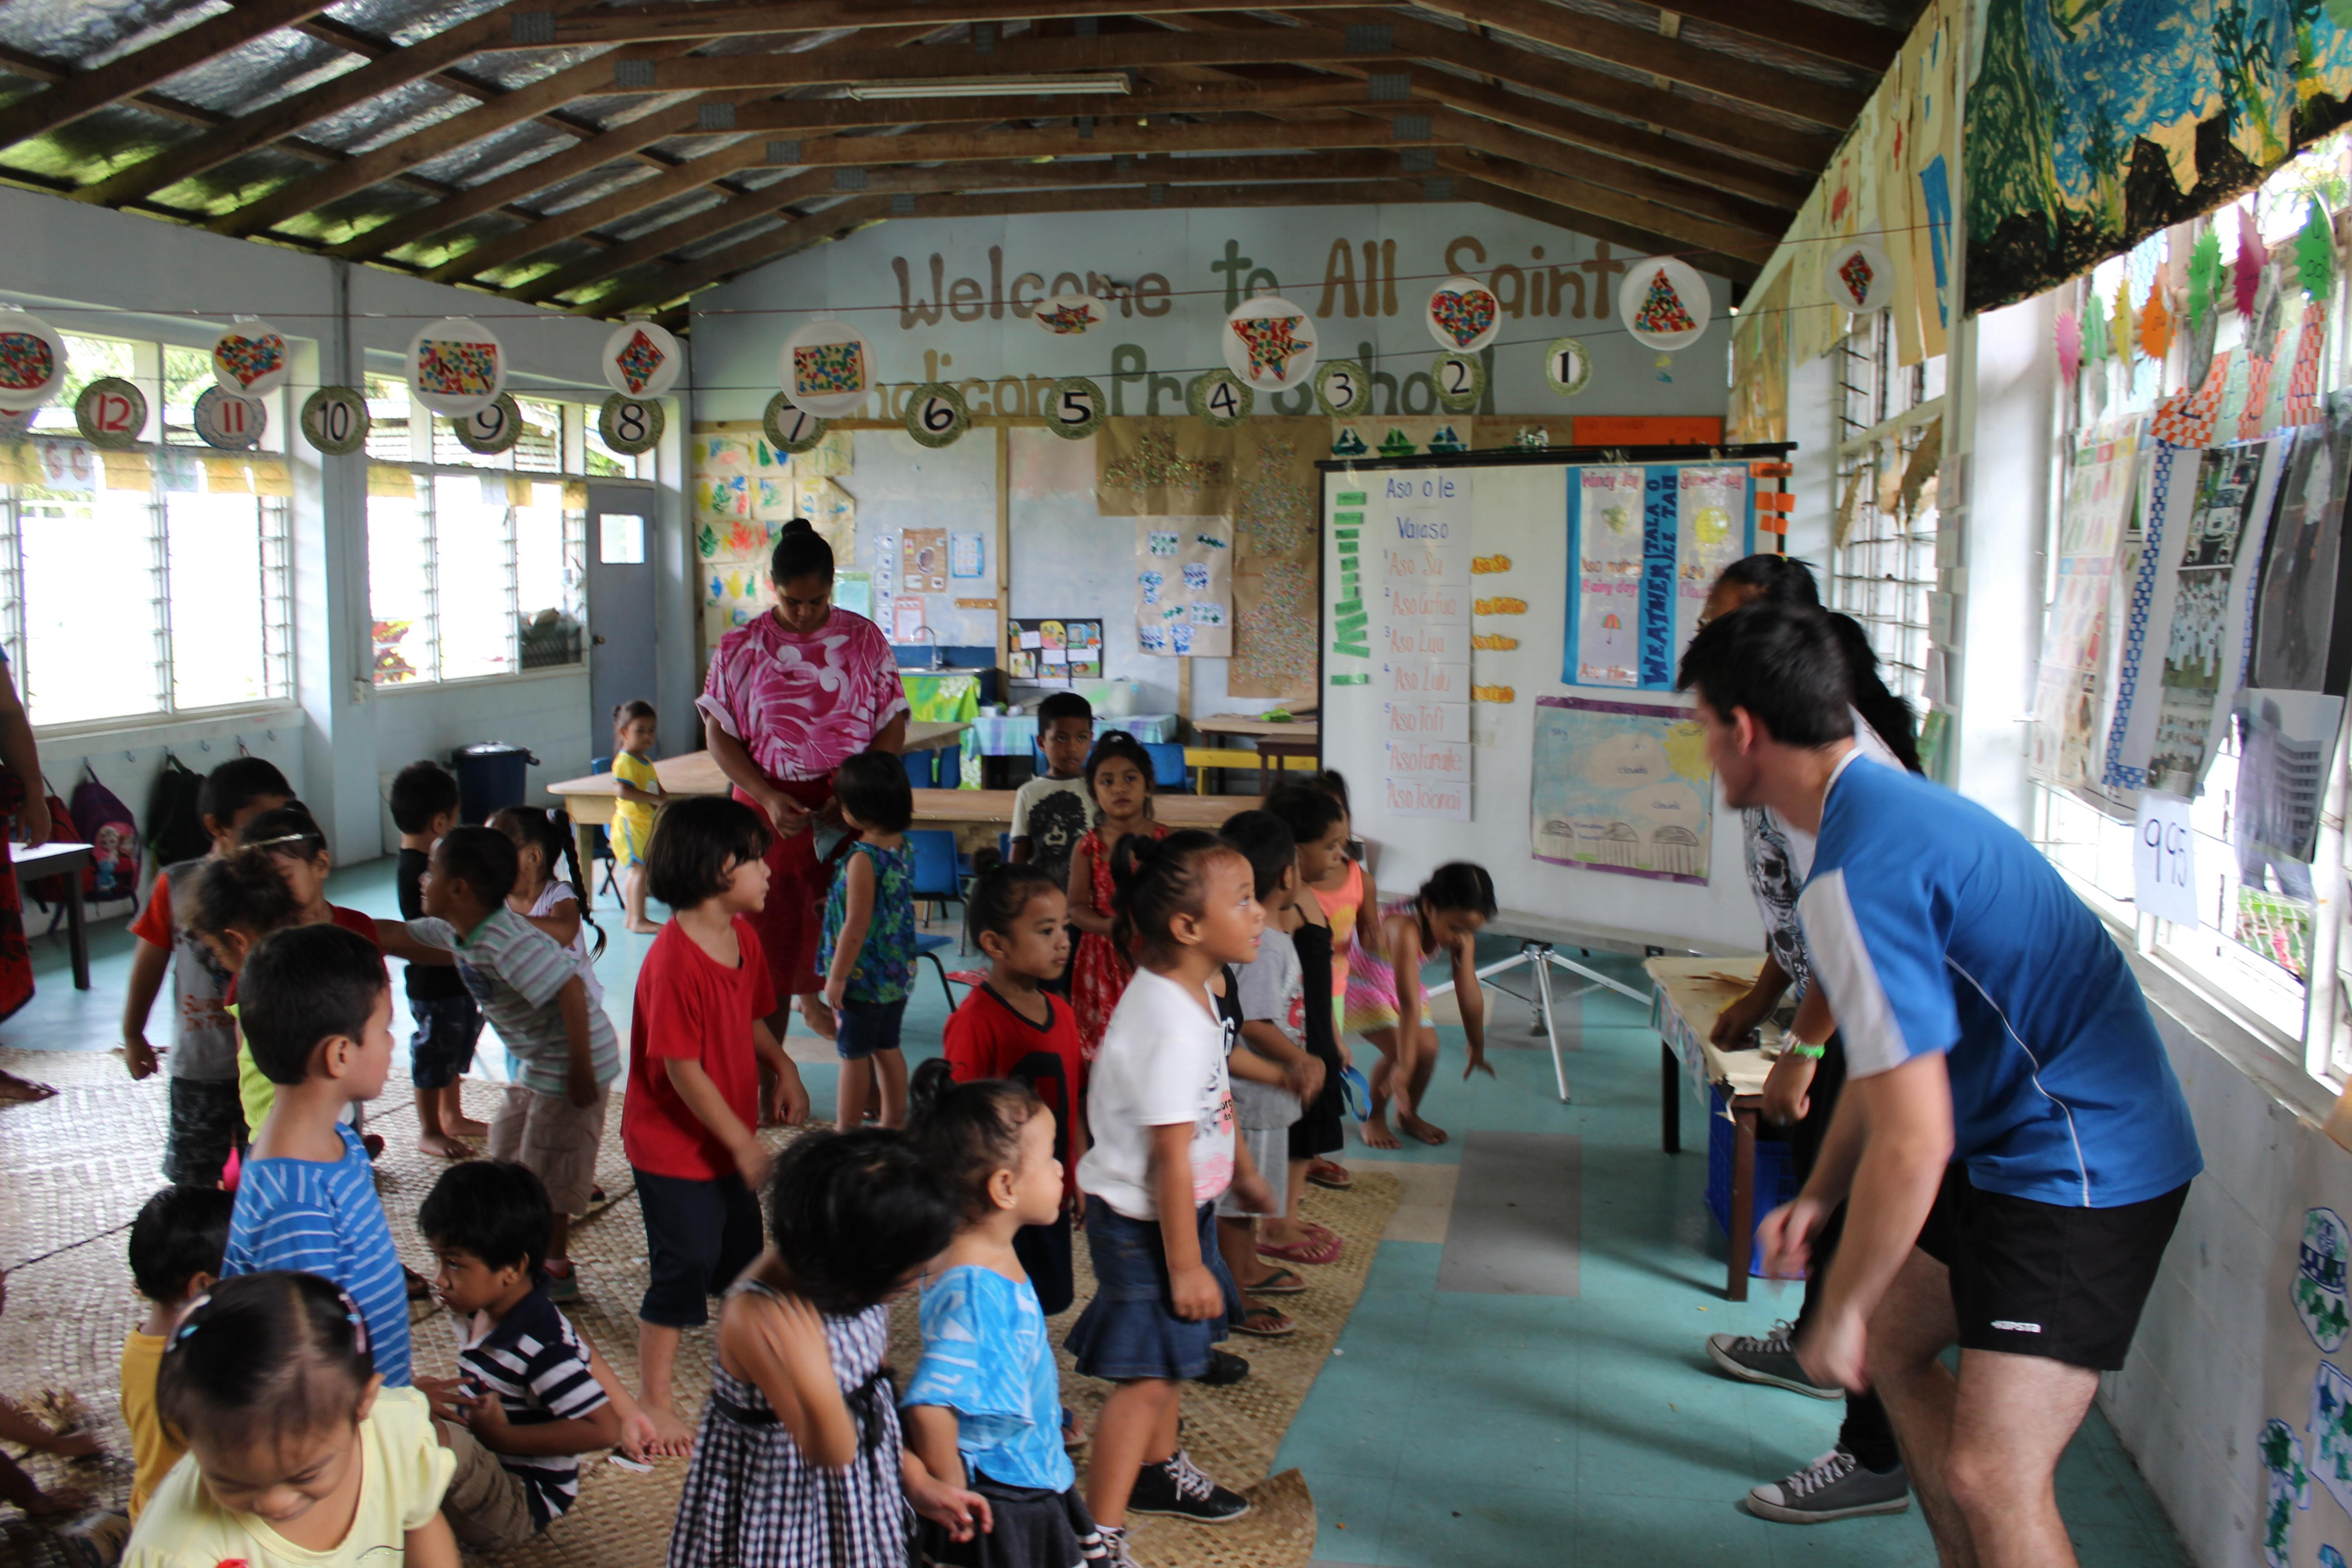 Projects Abroad volunteers teach a fun physical game to children to get them active and moving in Samoa.